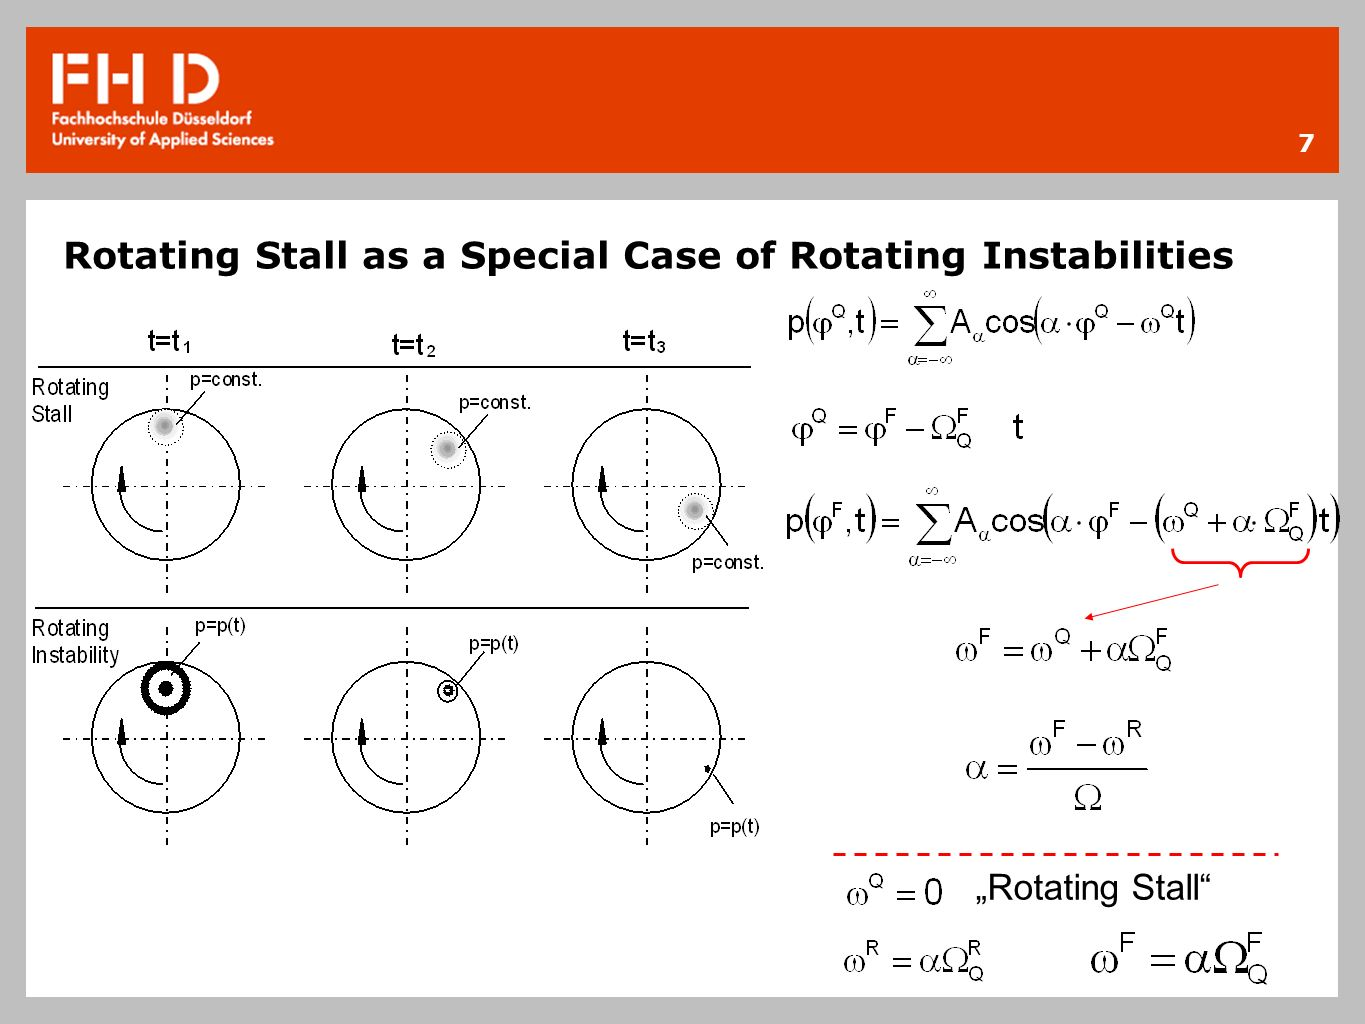 Rotating Stall as a Special Case of Rotating Instabilities